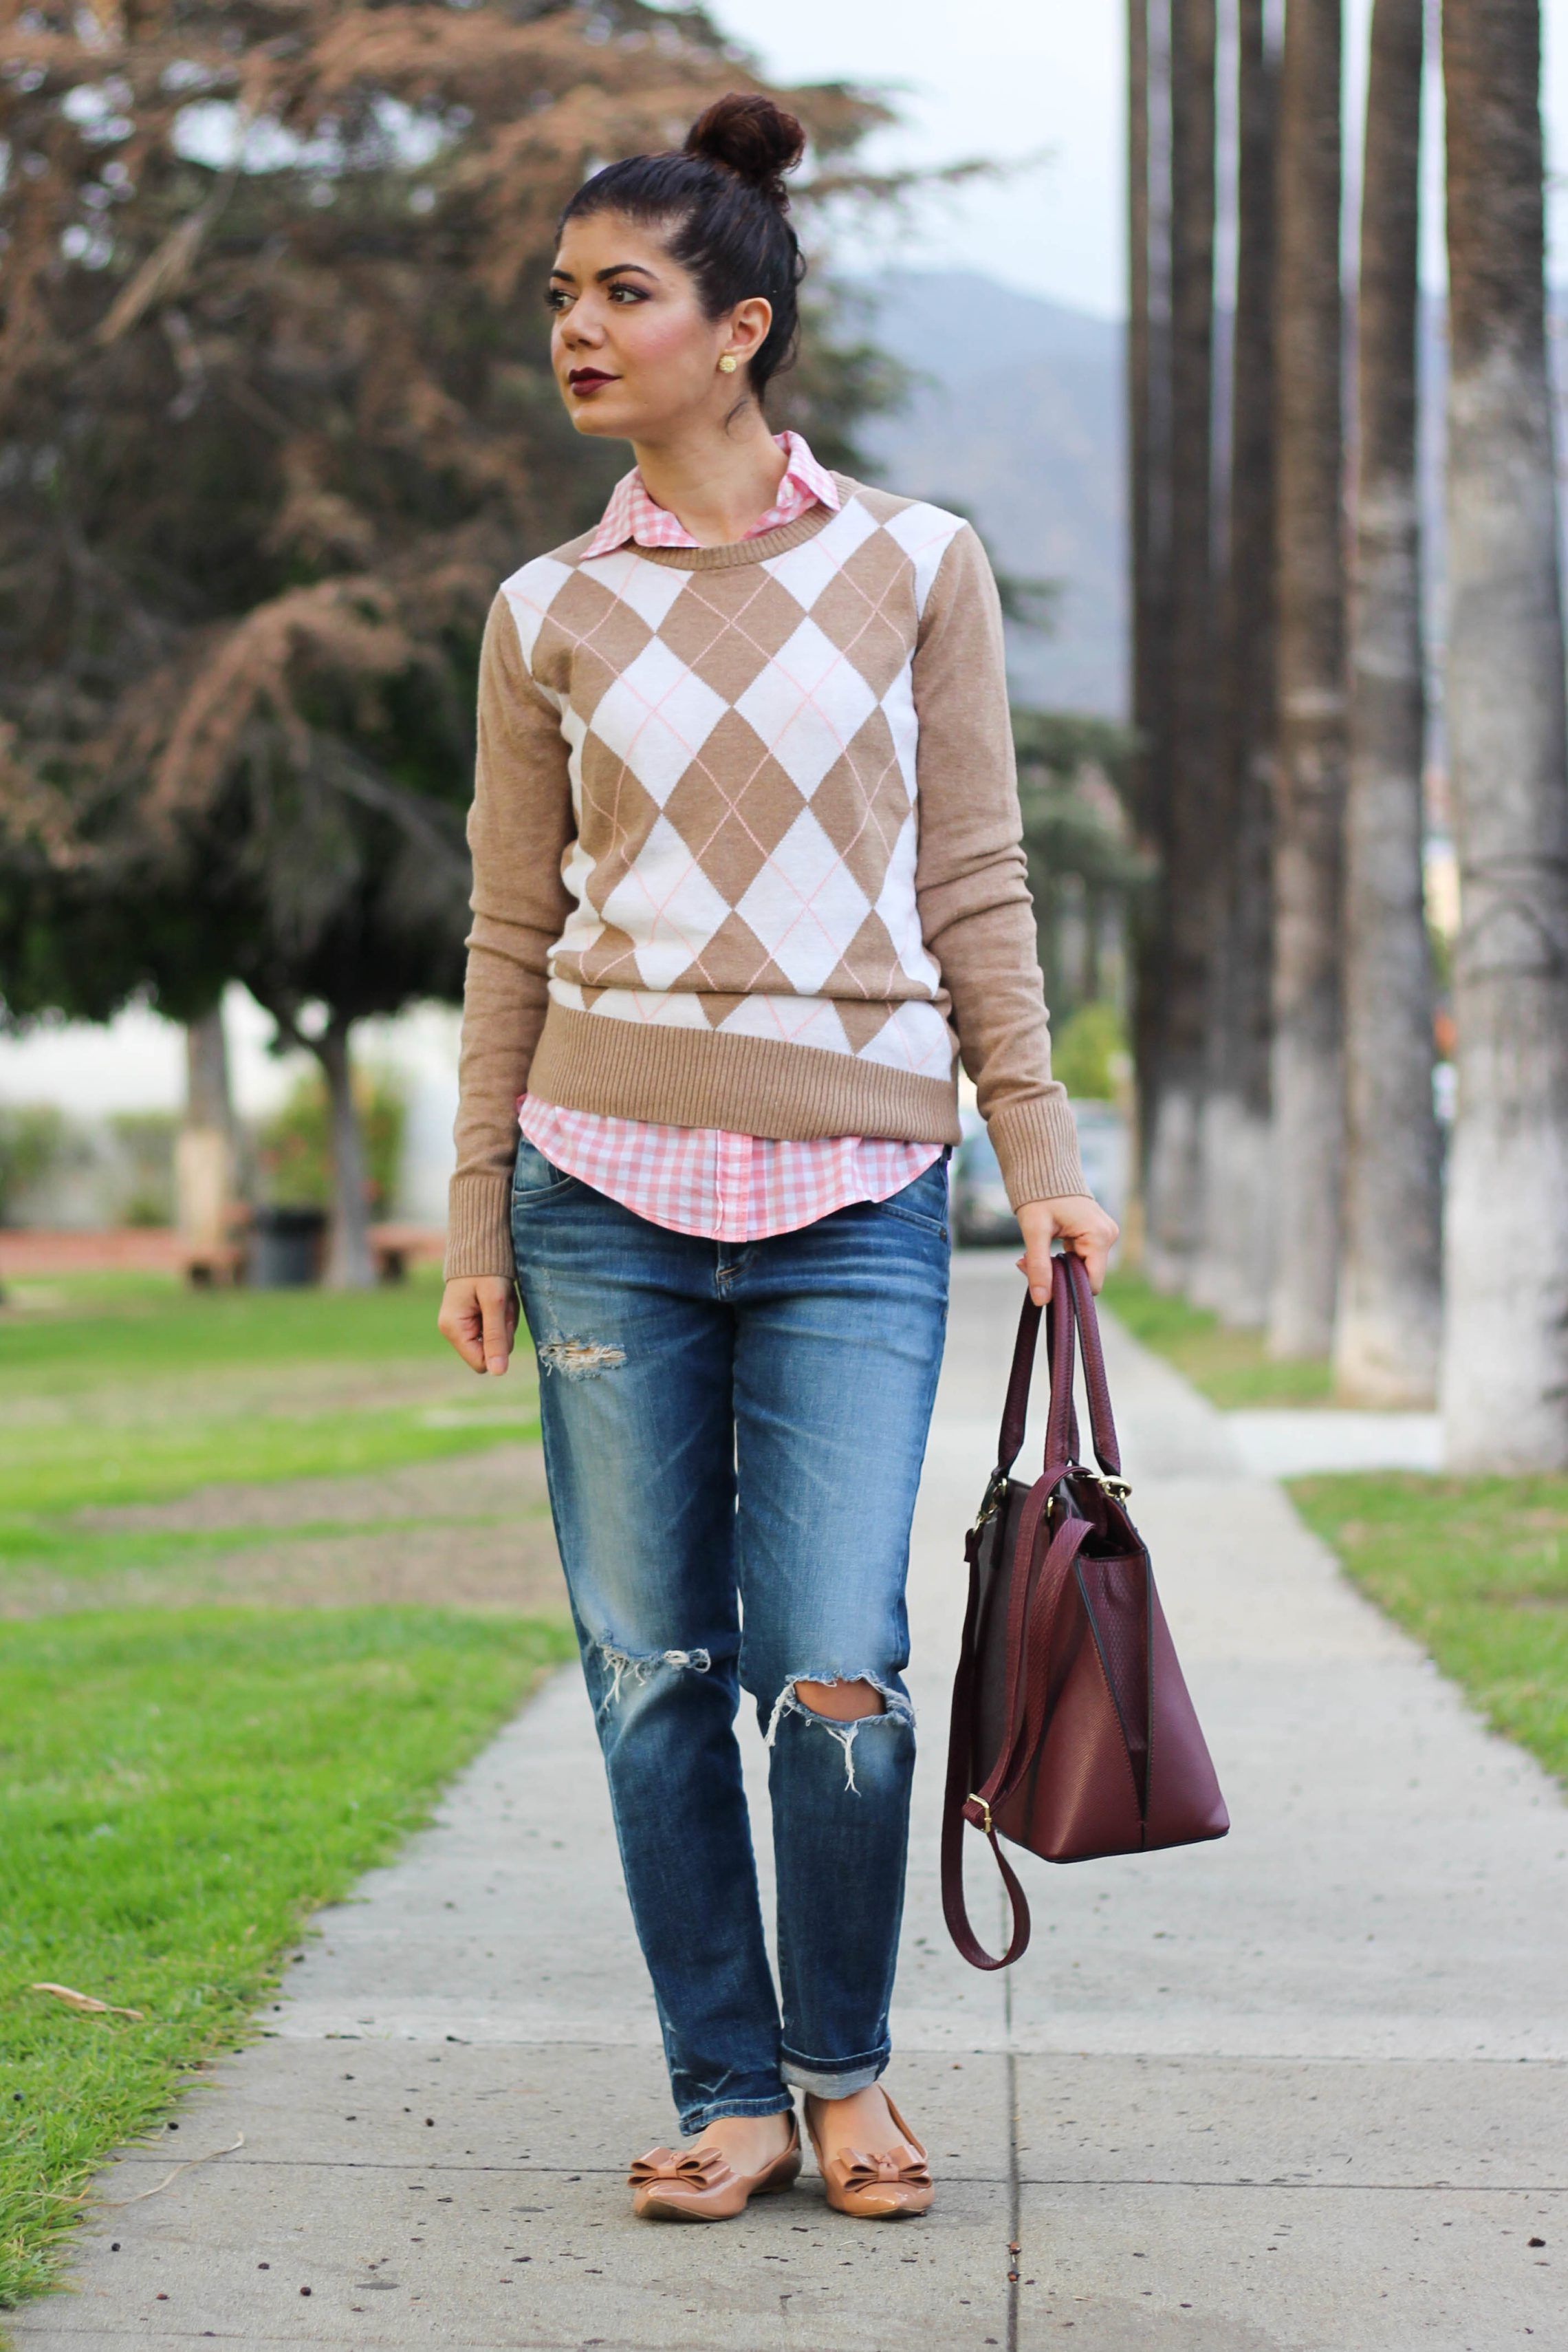 Polished whimsy in casual burgundy and pink outfit  4742cdc4b